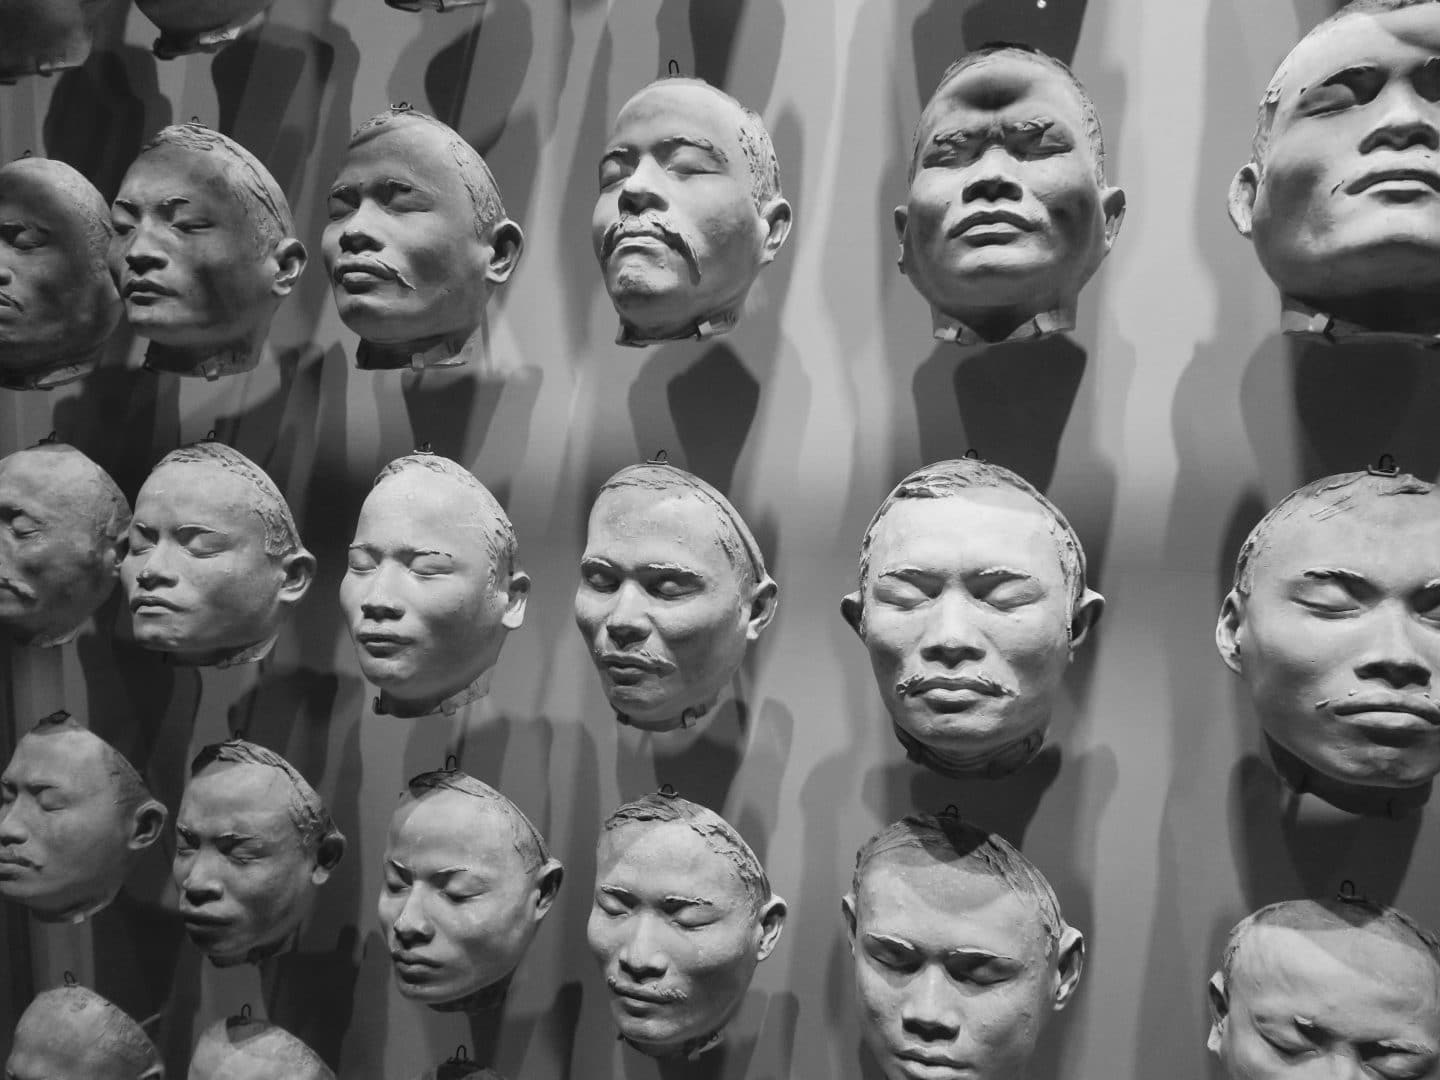 Heads at Rijksmuseum